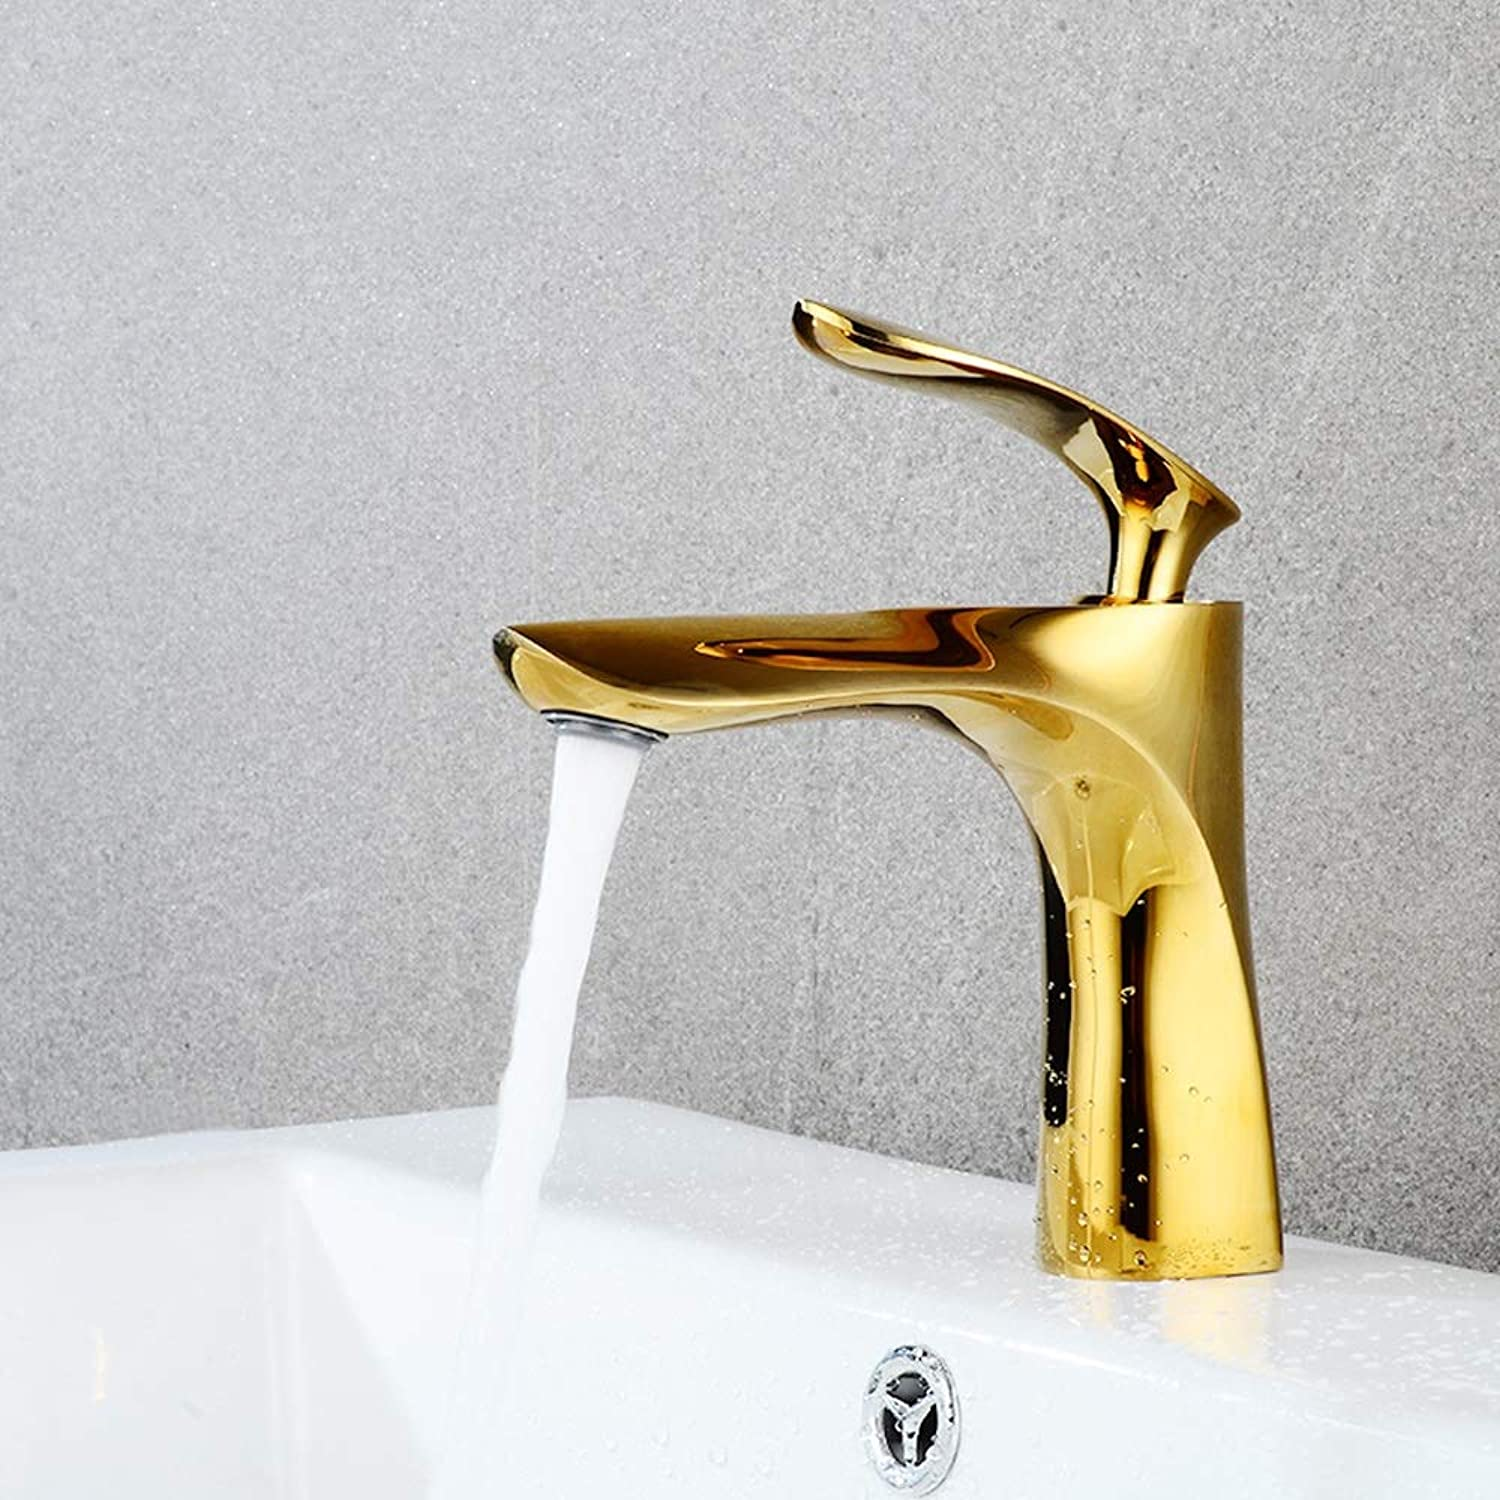 Dseing Bathroom Basin Single Hole Mixing Valve Hot And Cold Water Faucet, Brass Anti-corrosion Rustproof Durable Faucet, Minimalist Fashion Multicolor Practical Faucet (color   gold)